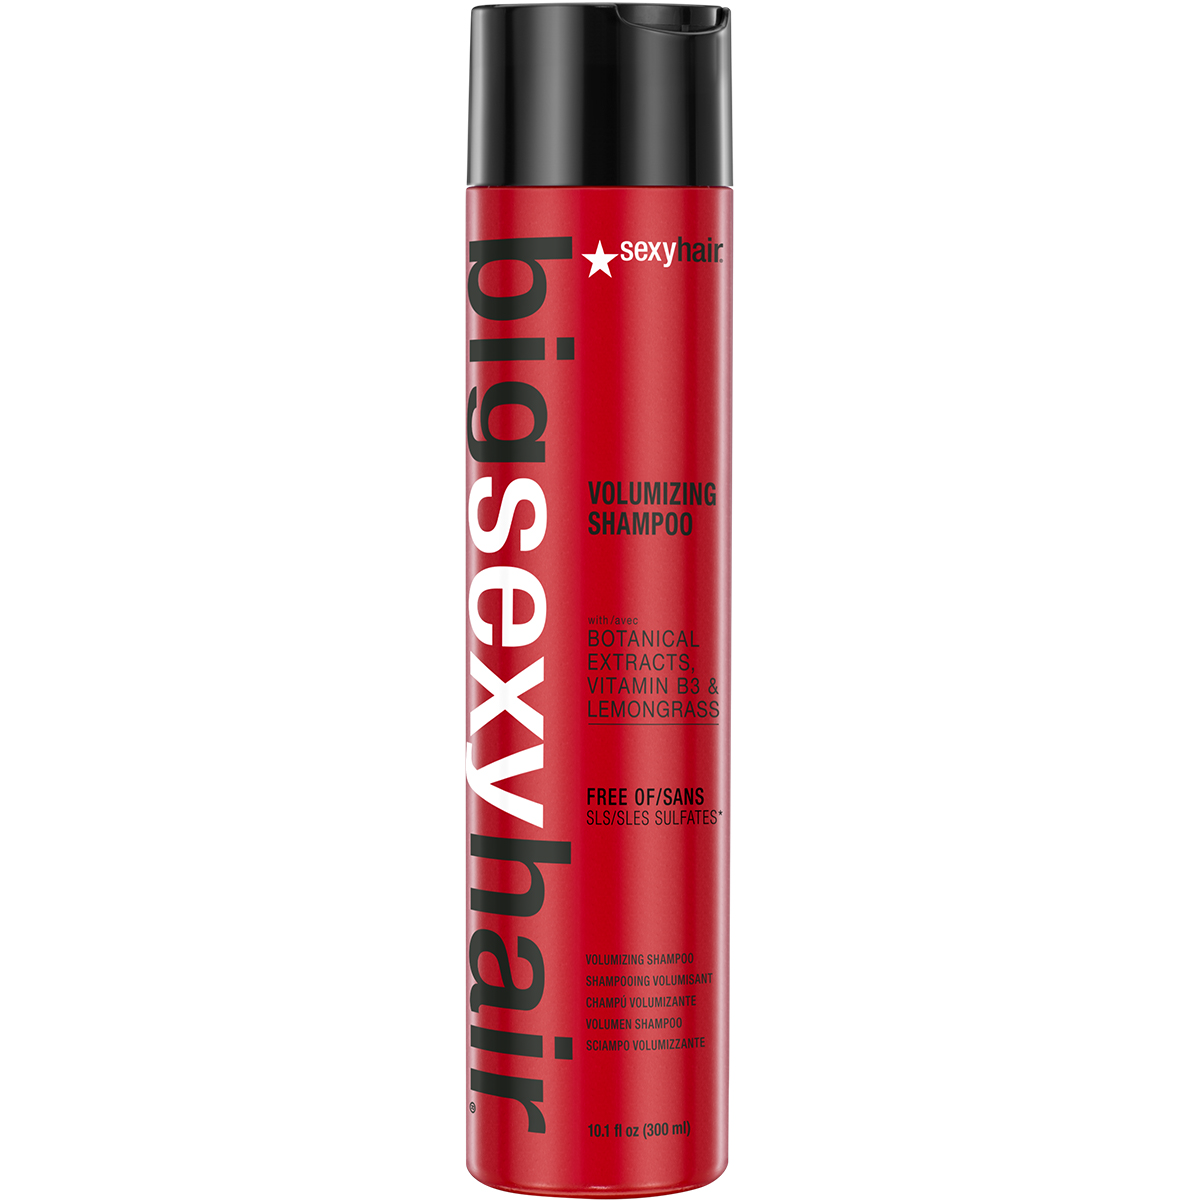 Sexy Hair Big Sexy Hair Volumizing Shampoo